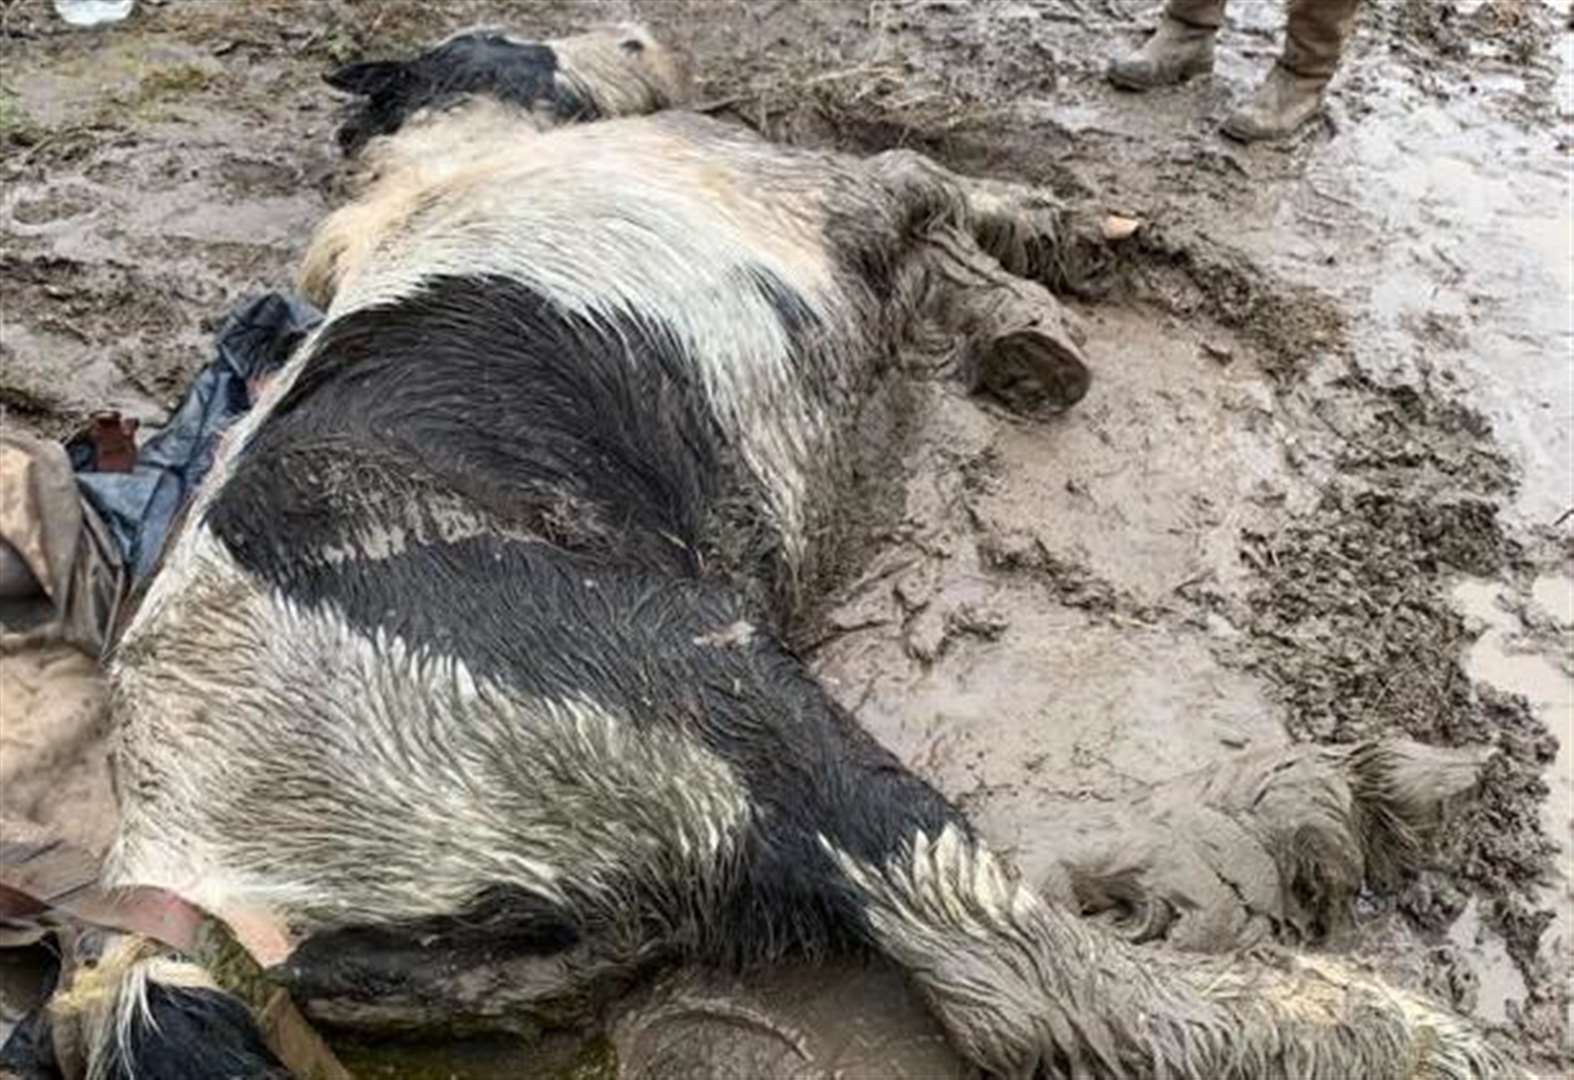 Horse dumped and 'left to die' during storm